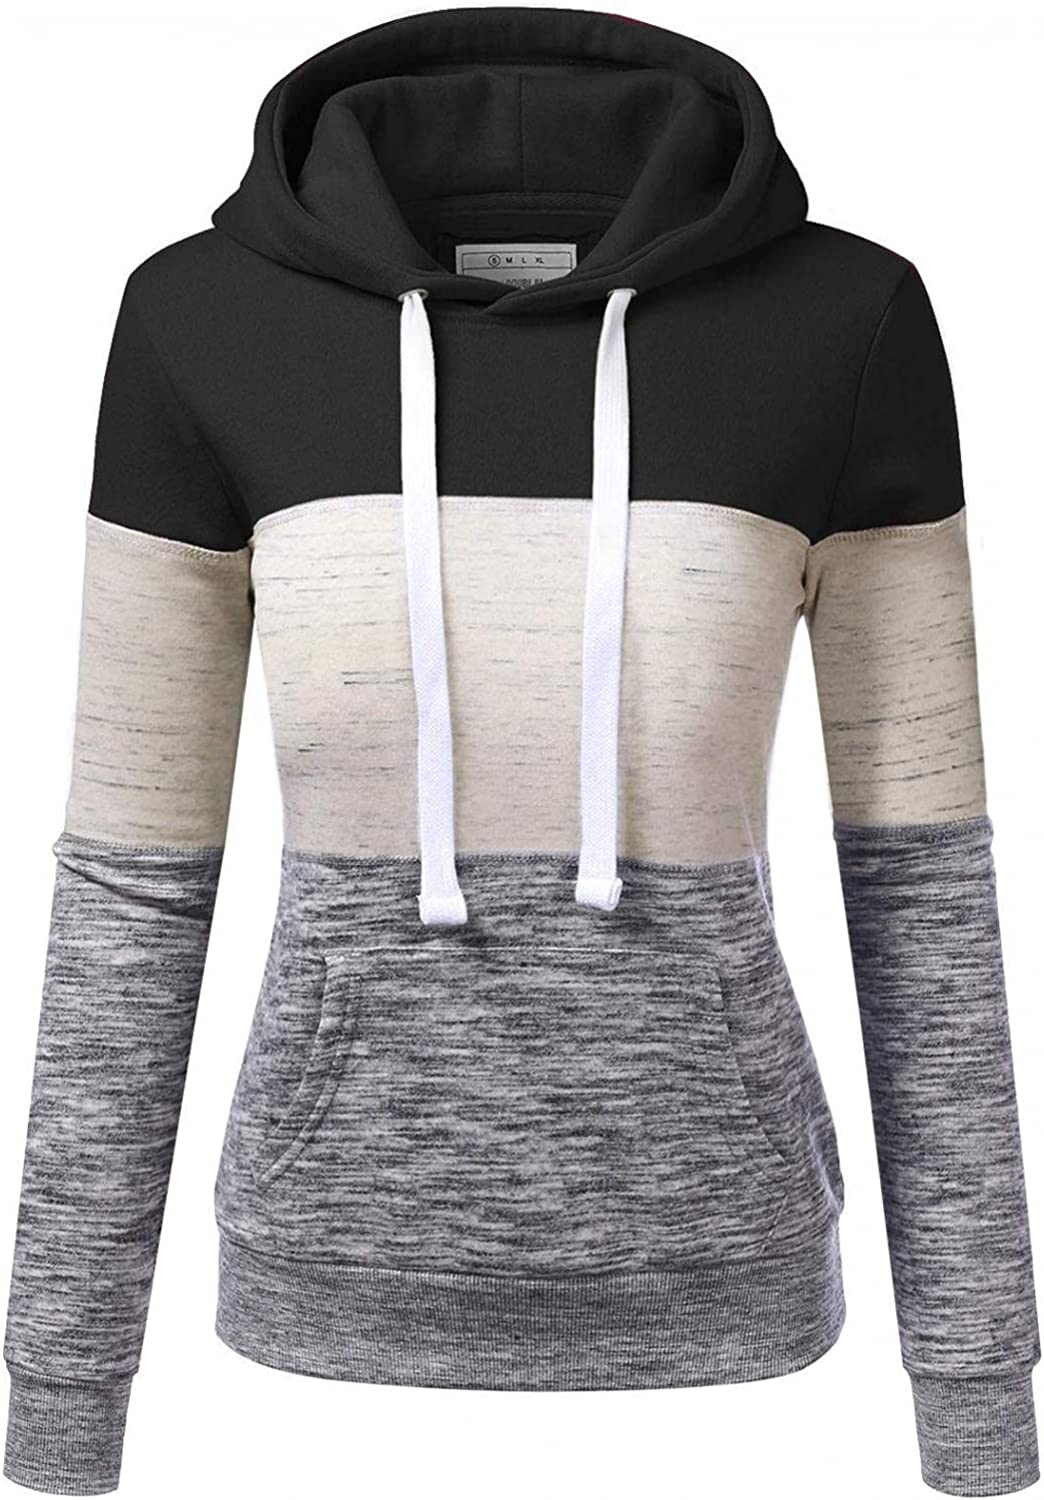 Hoodies for Women Plus Size,Womens Color Block Hoodie Sweatshirts Stitching Color Drawstring Pullover Casual Tops